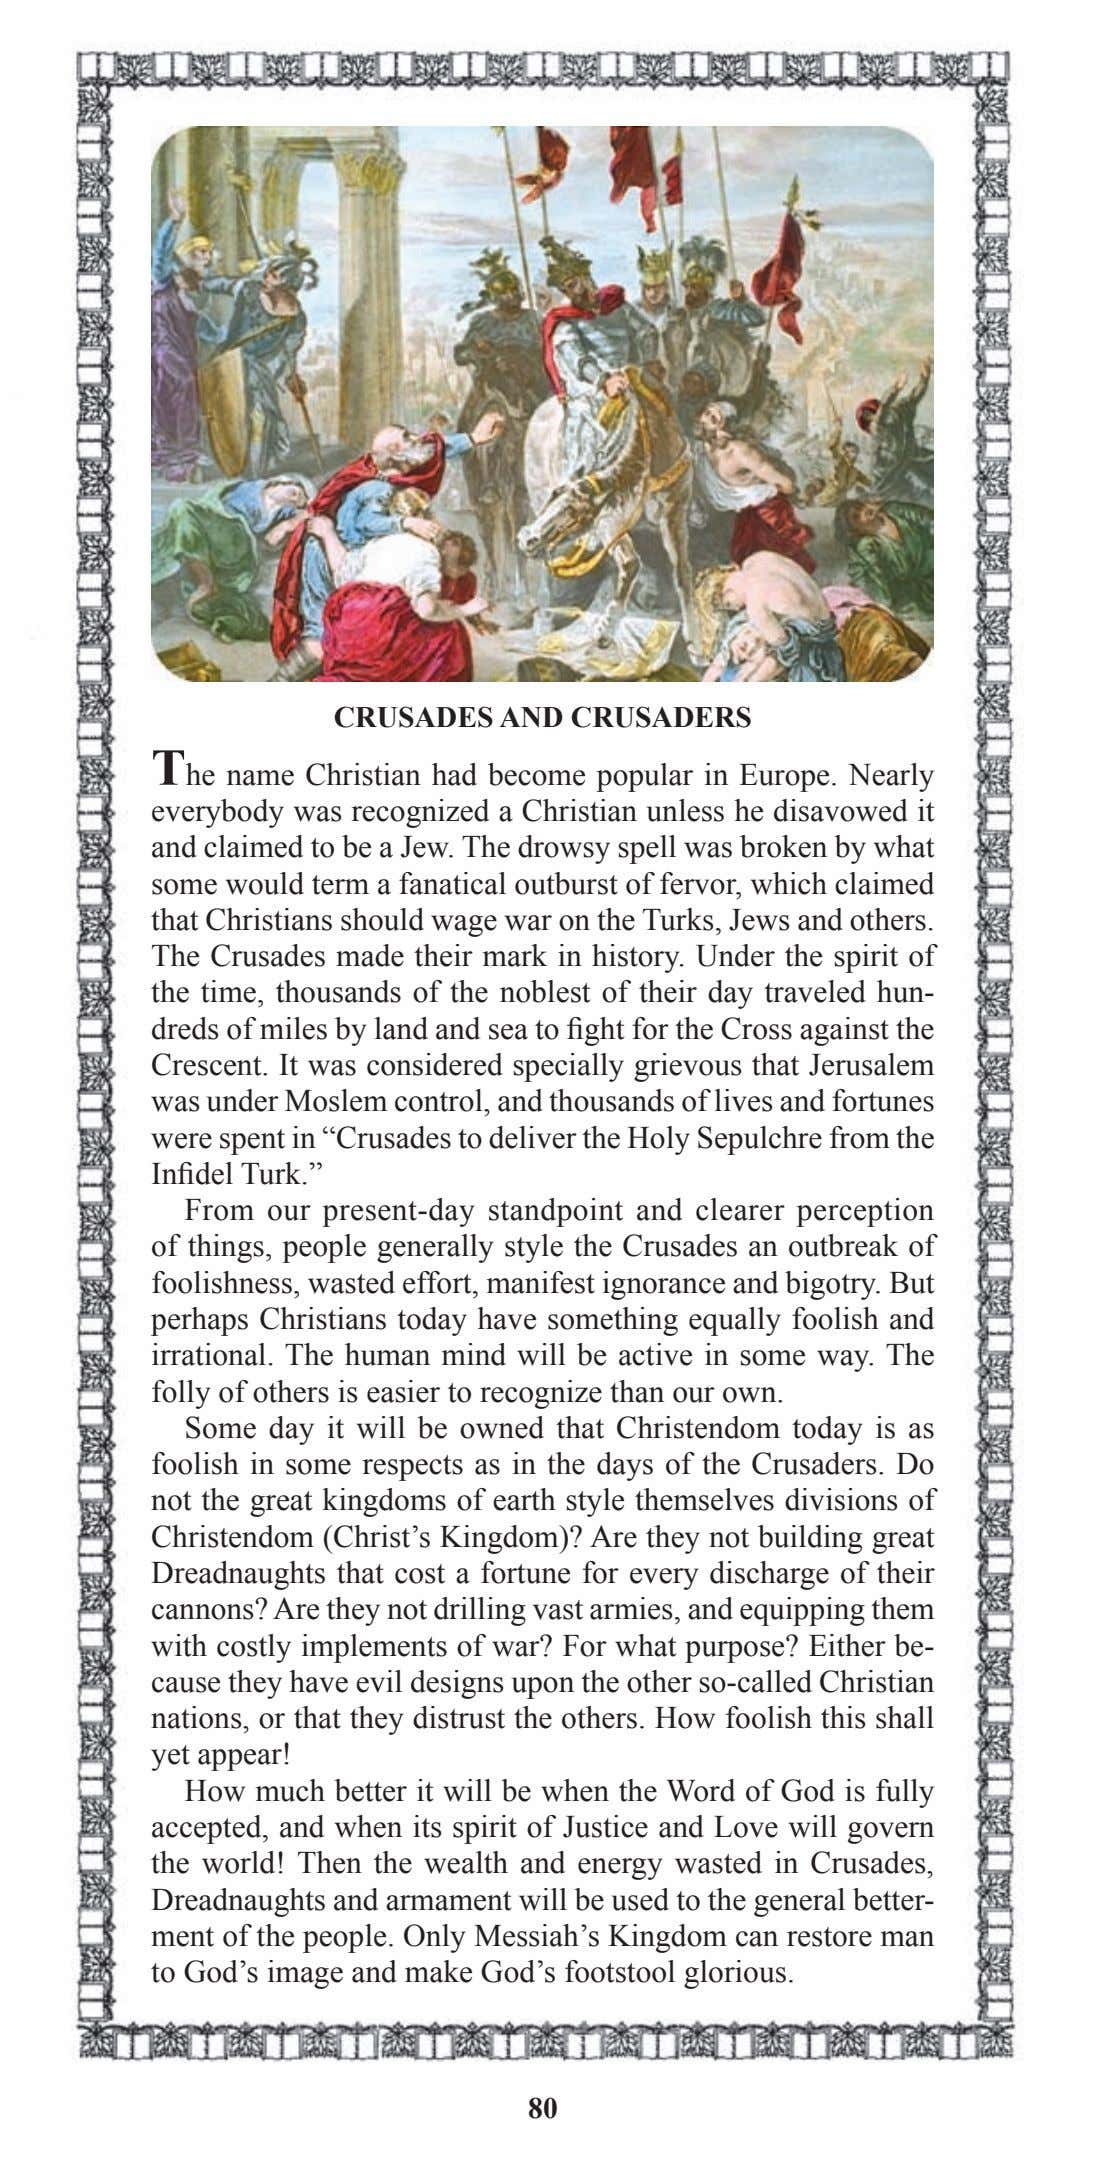 CRUSADES AND CRUSADERS The name Christian had become popular in Europe. Nearly everybody was recognized